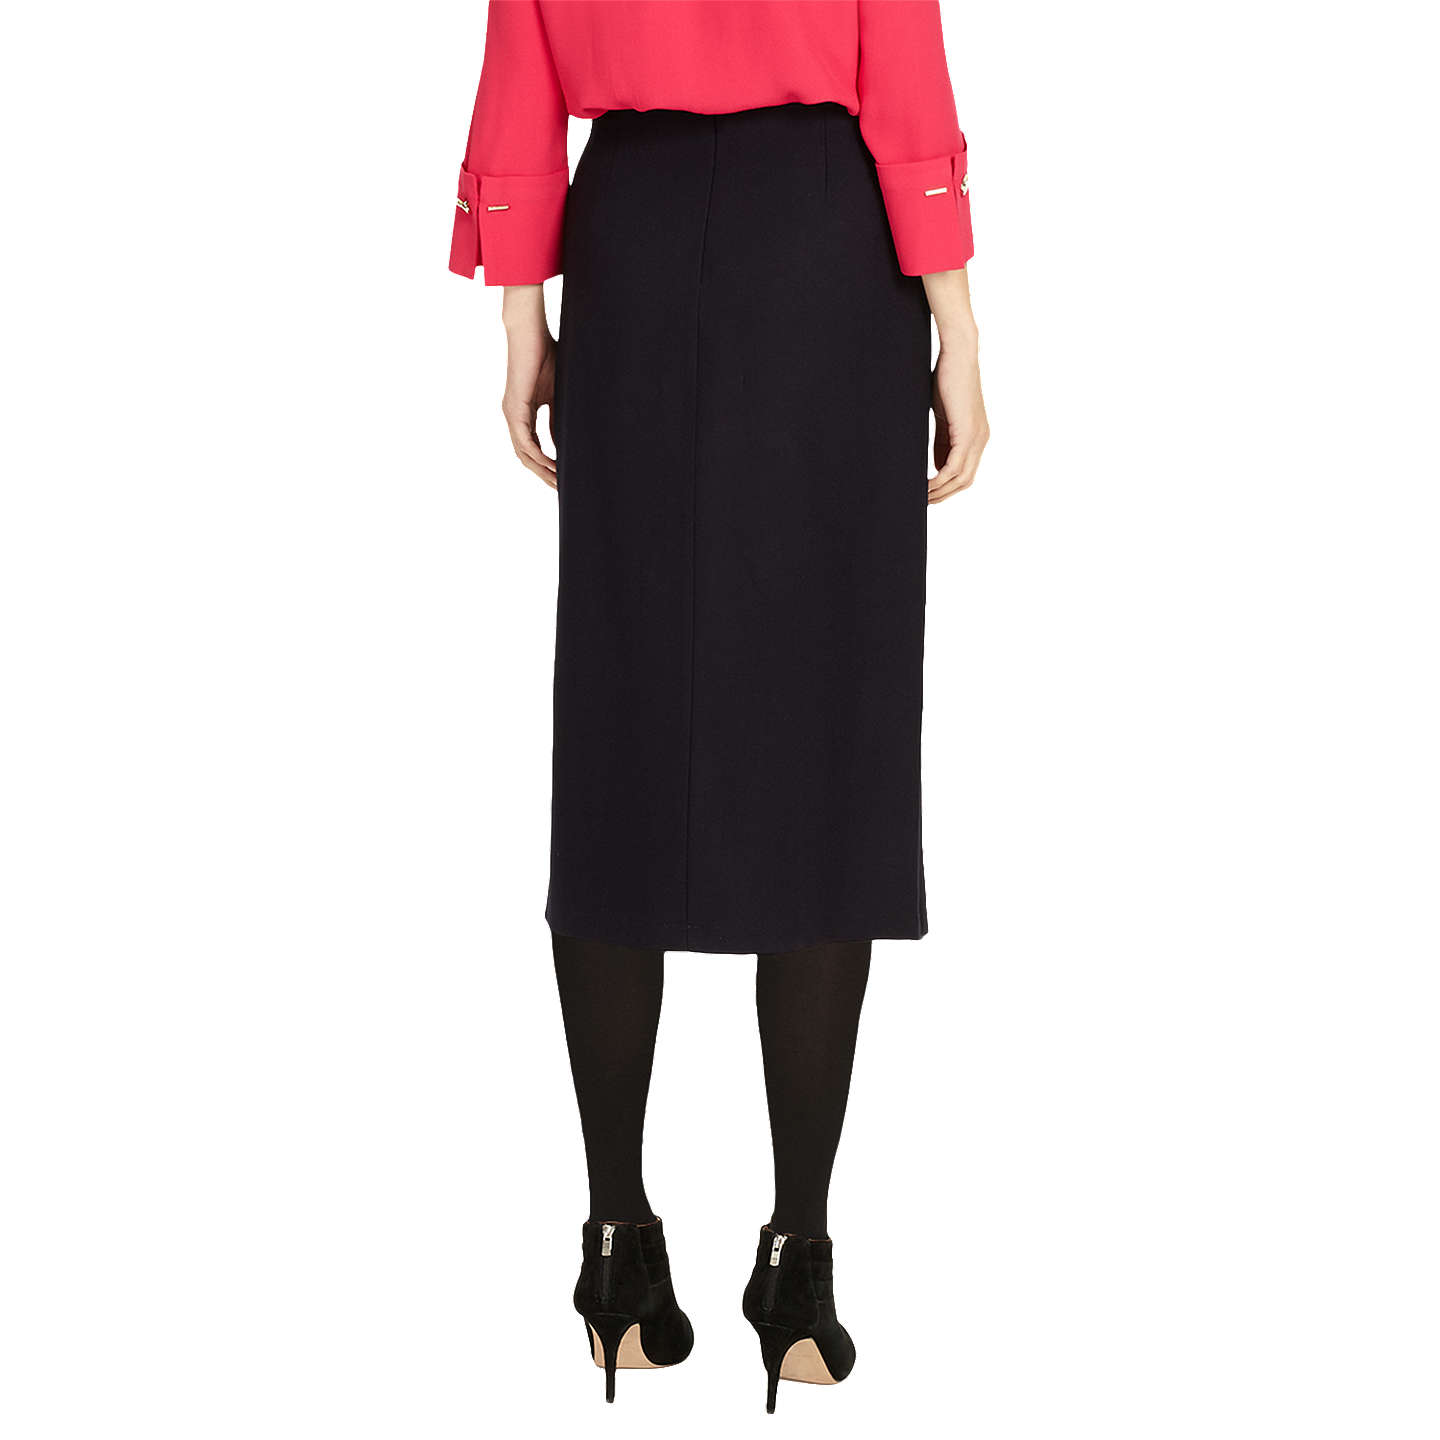 BuyPhase Eight Emeraude Cross Front Skirt, Navy, 8 Online at johnlewis.com